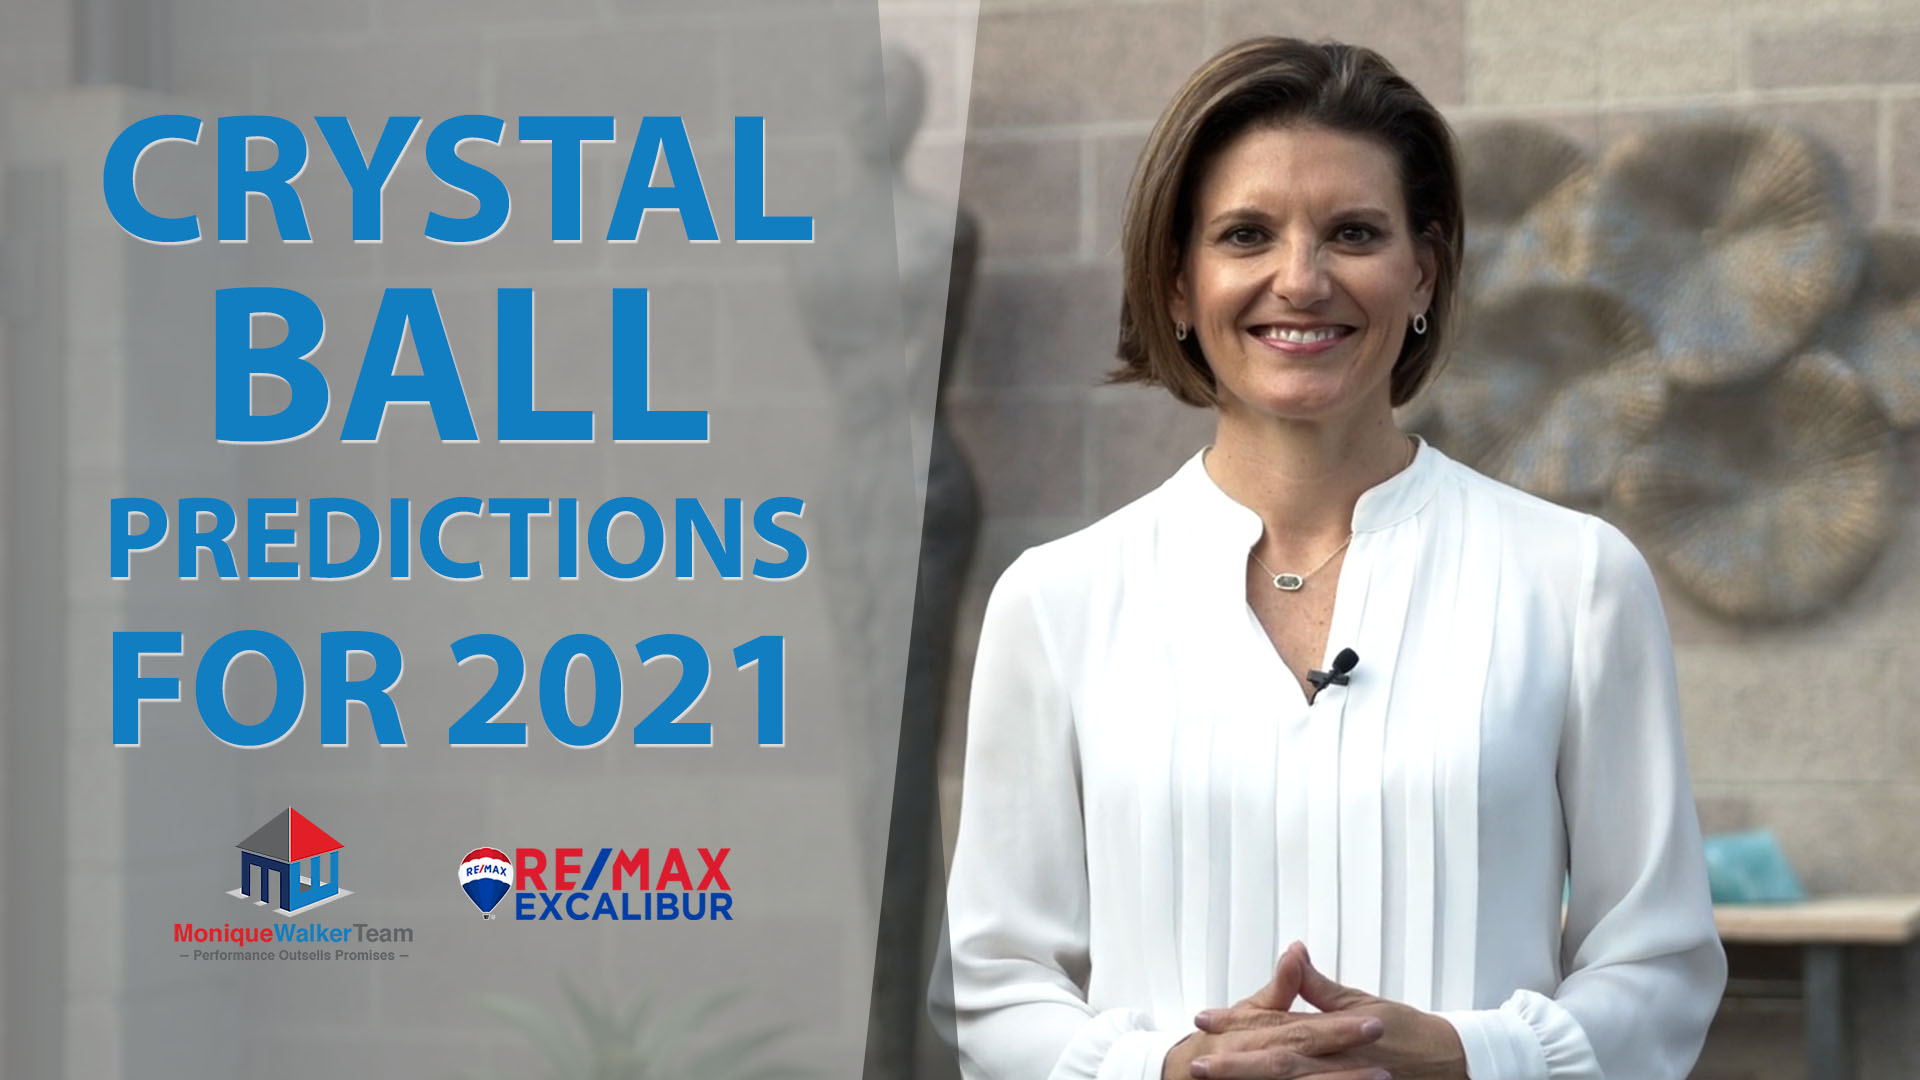 Crystal Ball Predictions for 2021